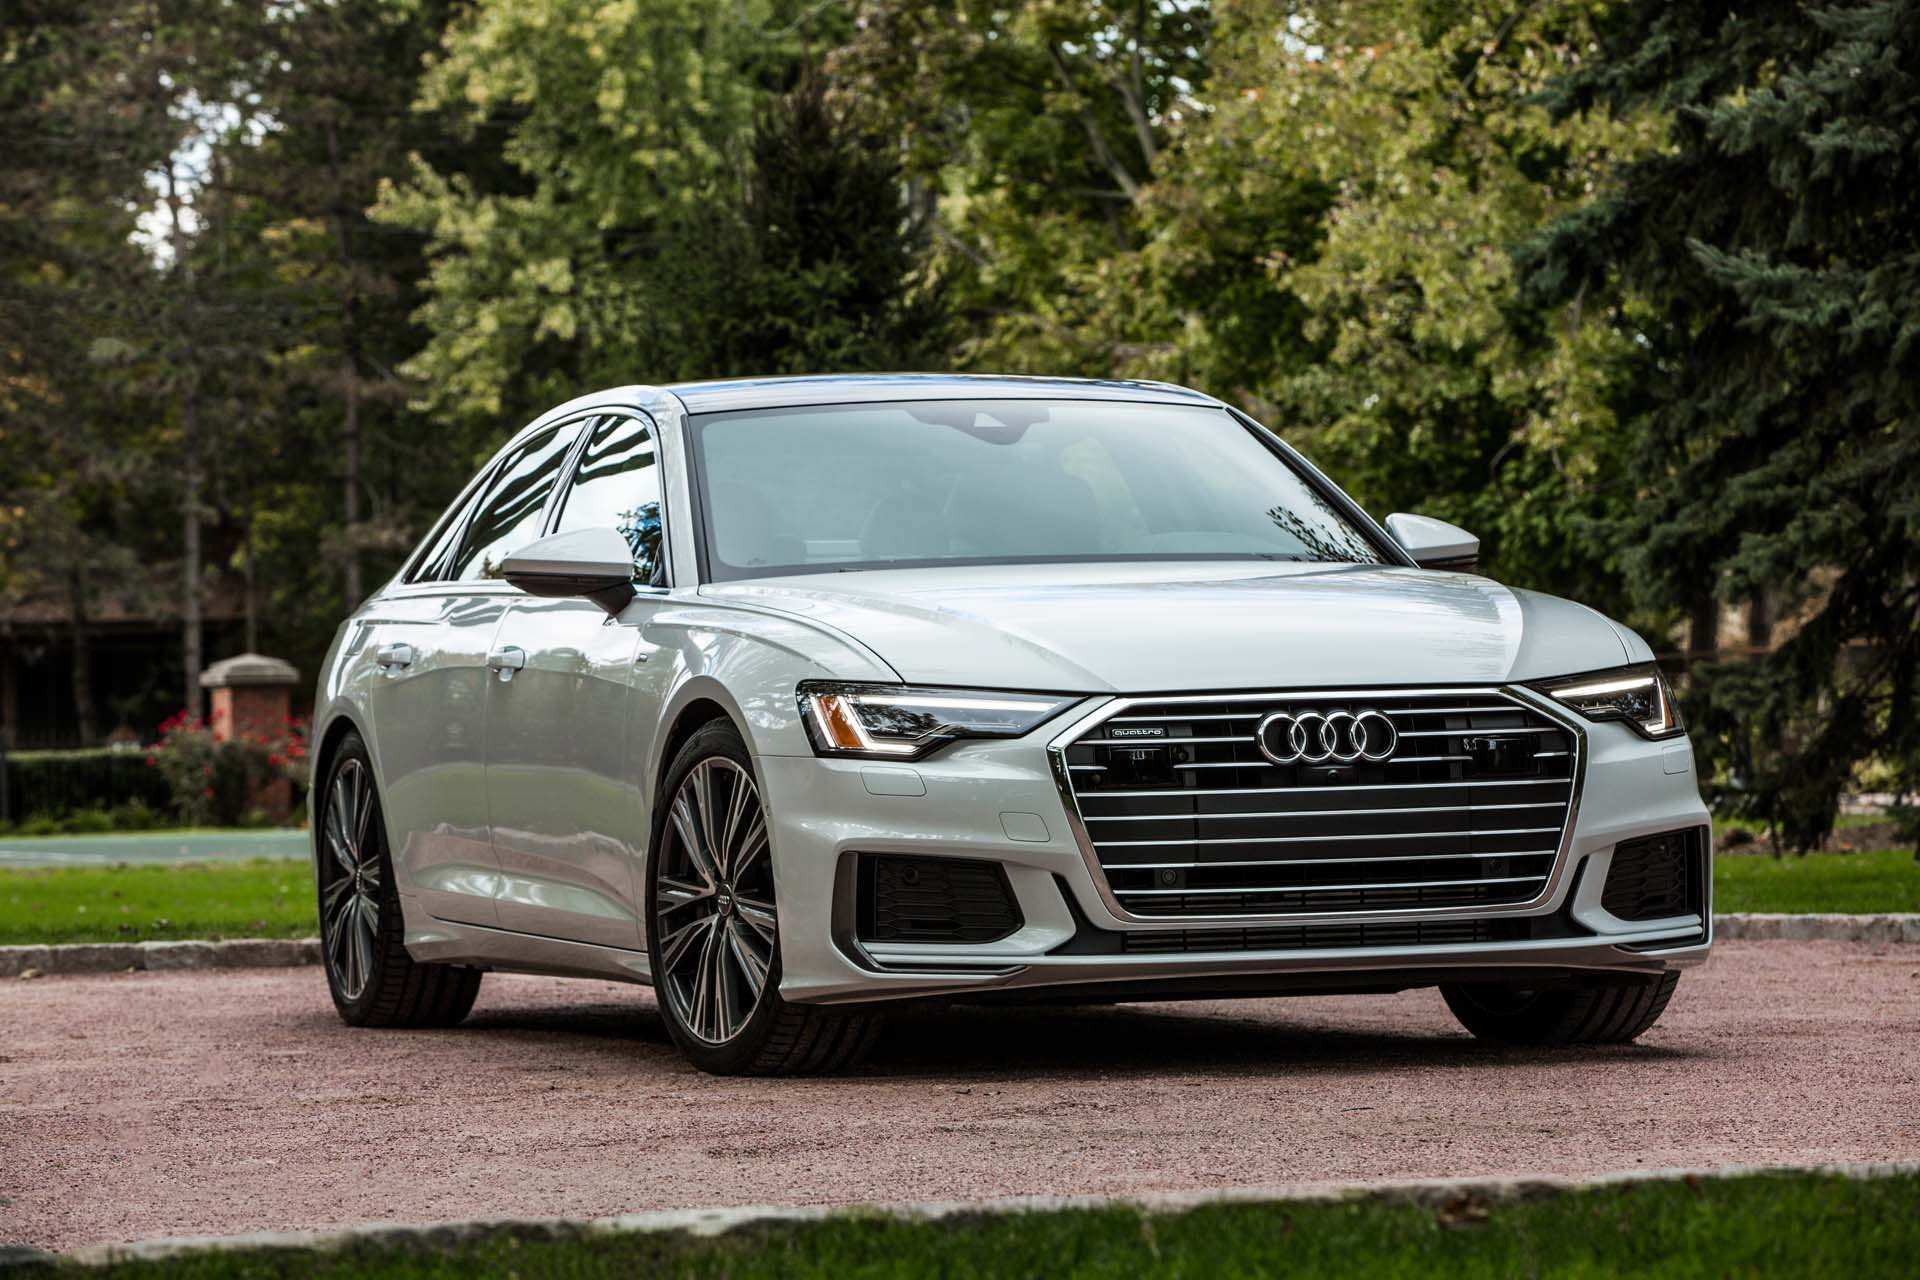 61 Best Review 2019 Audi A6 News Pricing with 2019 Audi A6 News